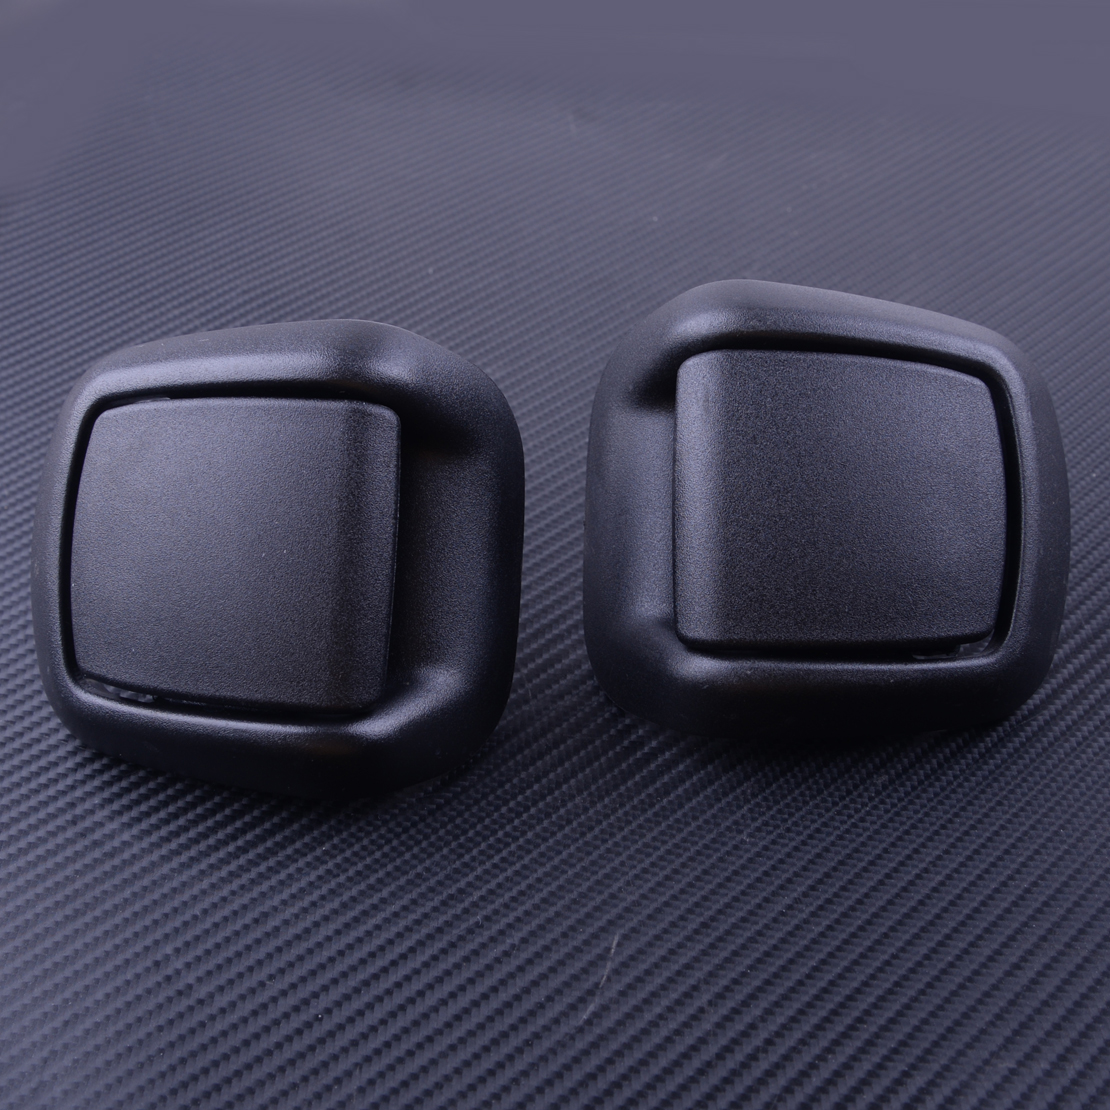 1417520 1417521 1Pair Car Front Right Left Seat Tilt Handle Fit For Ford Fiesta MK6 VI 3 Door 2002 2003 2004 2005 2006 2007 2008 image